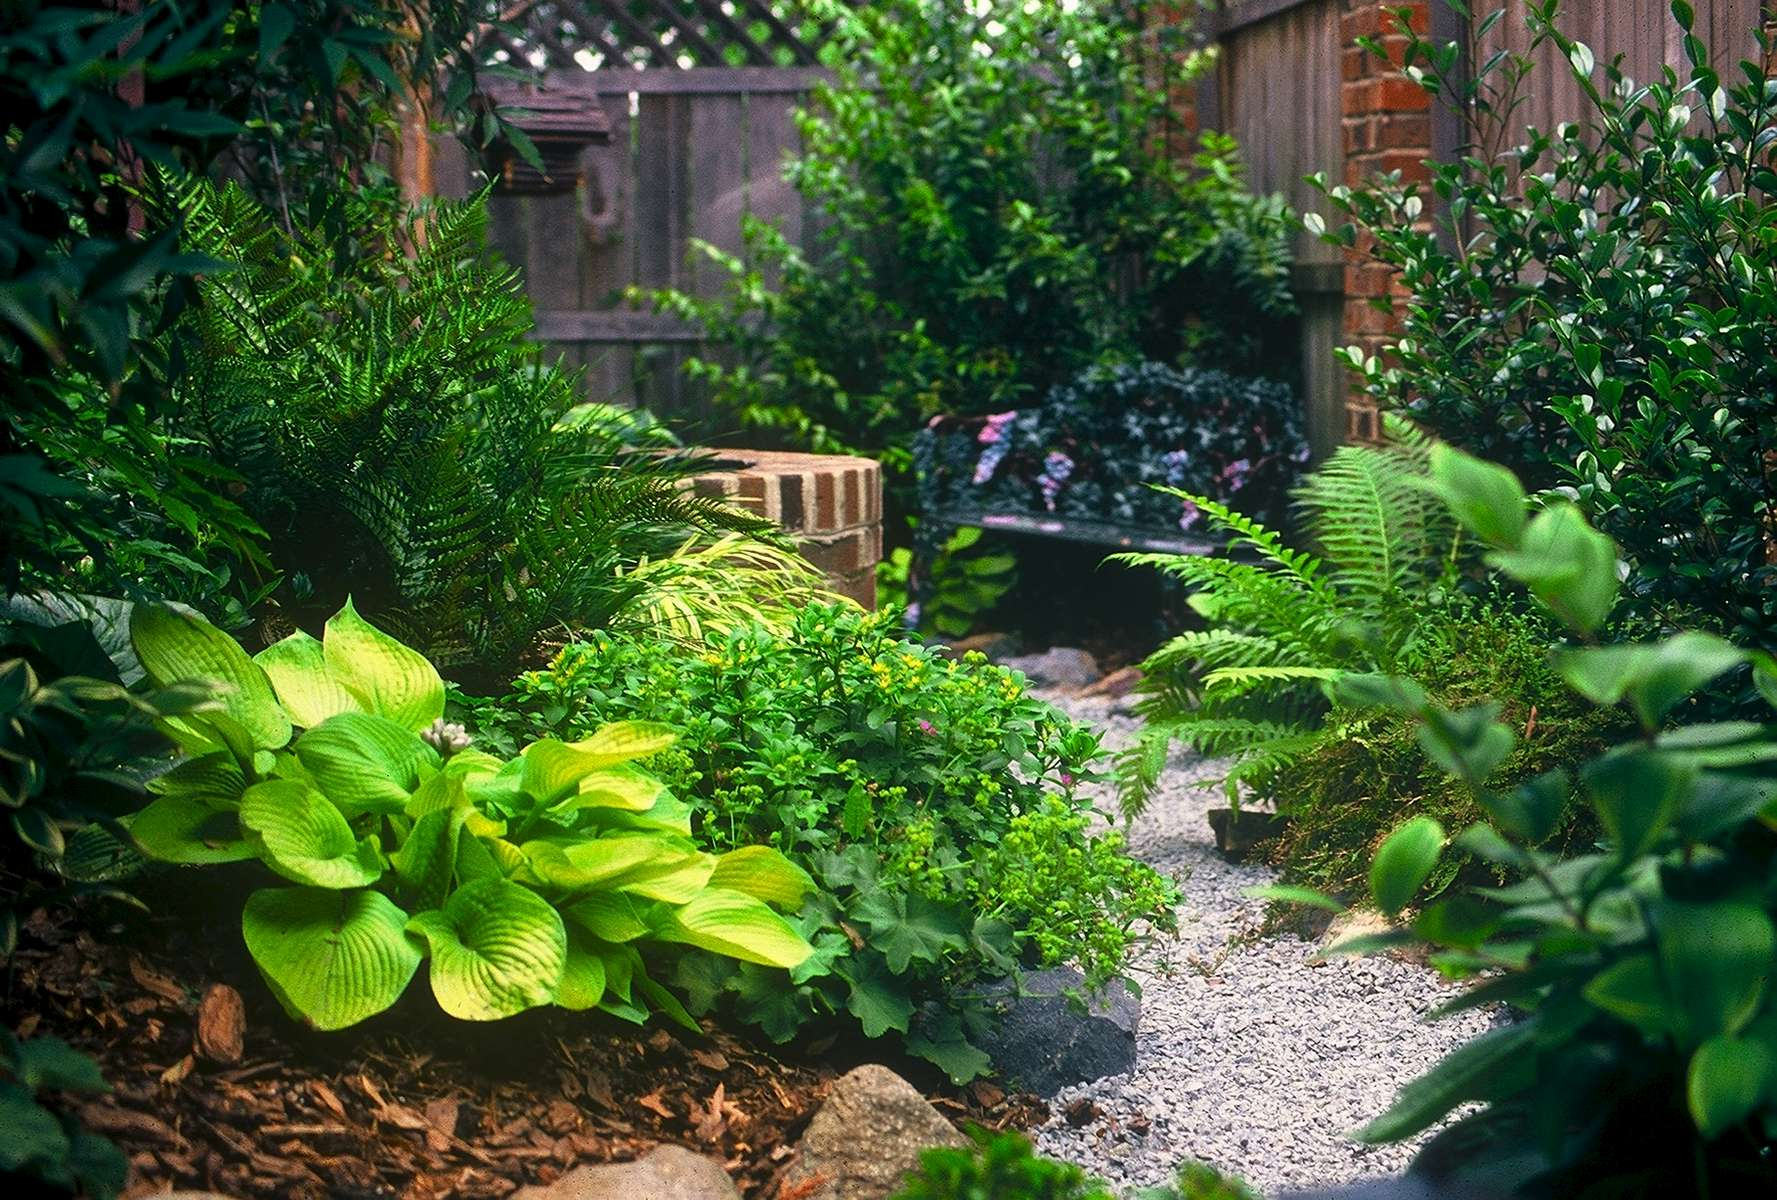 The winding crushed stone path meanders past lush hosta, ferns and heucheras, providing abundant sensory pleasure punctuated at its end with an endearing garden niche . . . a raised, circular fountain and wrought iron bench . . . just right for contemplating the good things in life!